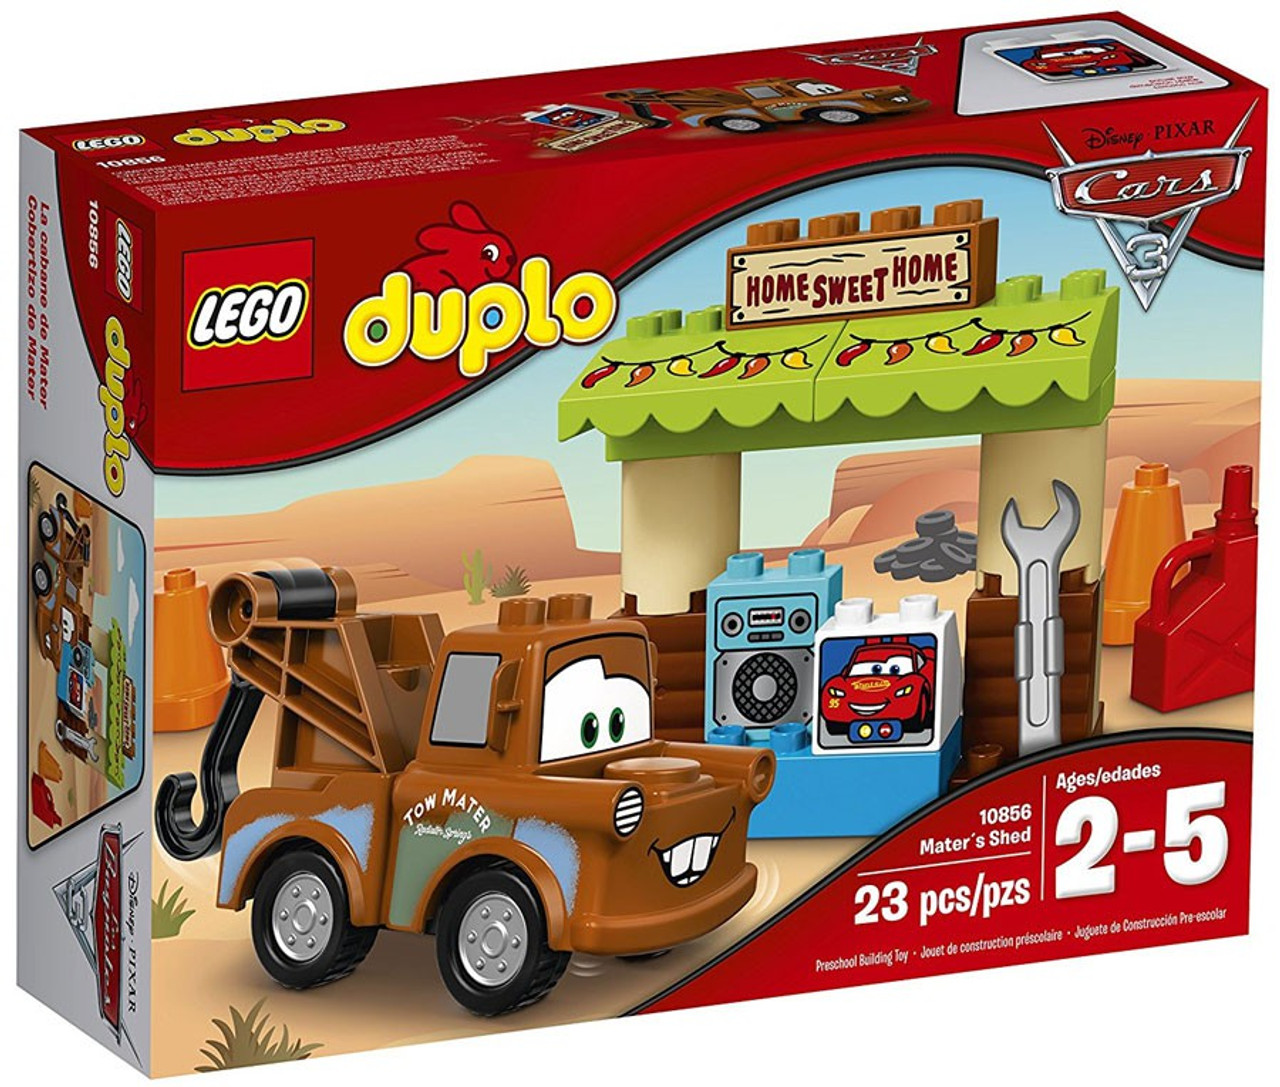 Lego Disney Pixar Cars Cars 3 Duplo Maters Shed Set 10856 Toywiz